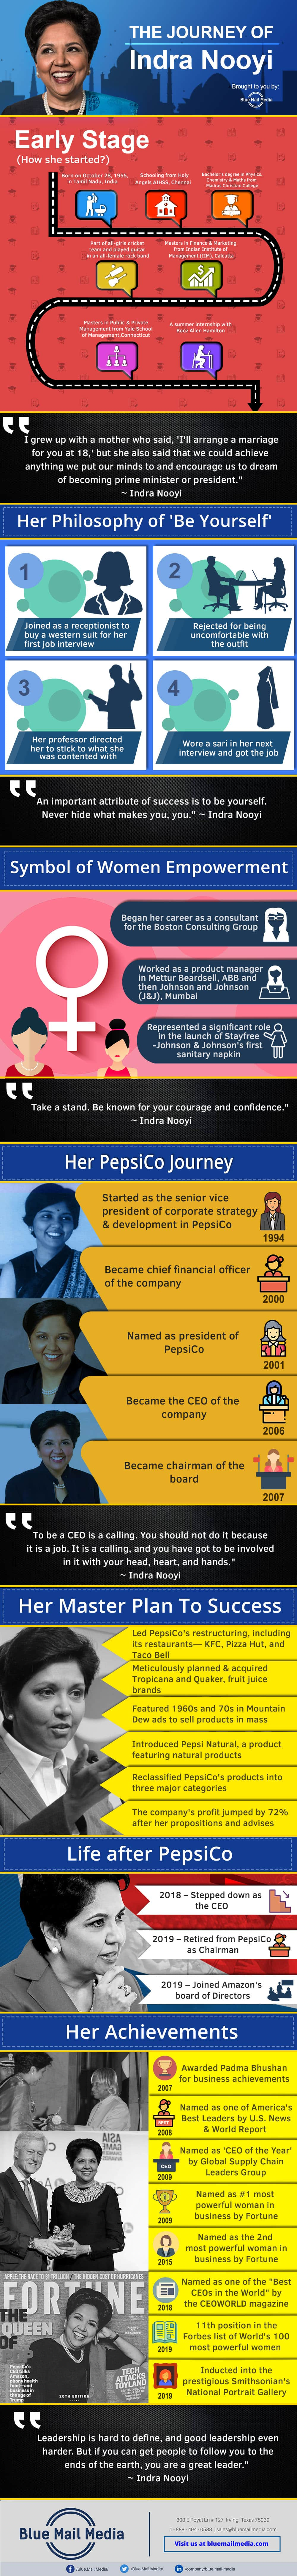 The Journey of Indra Nooyi